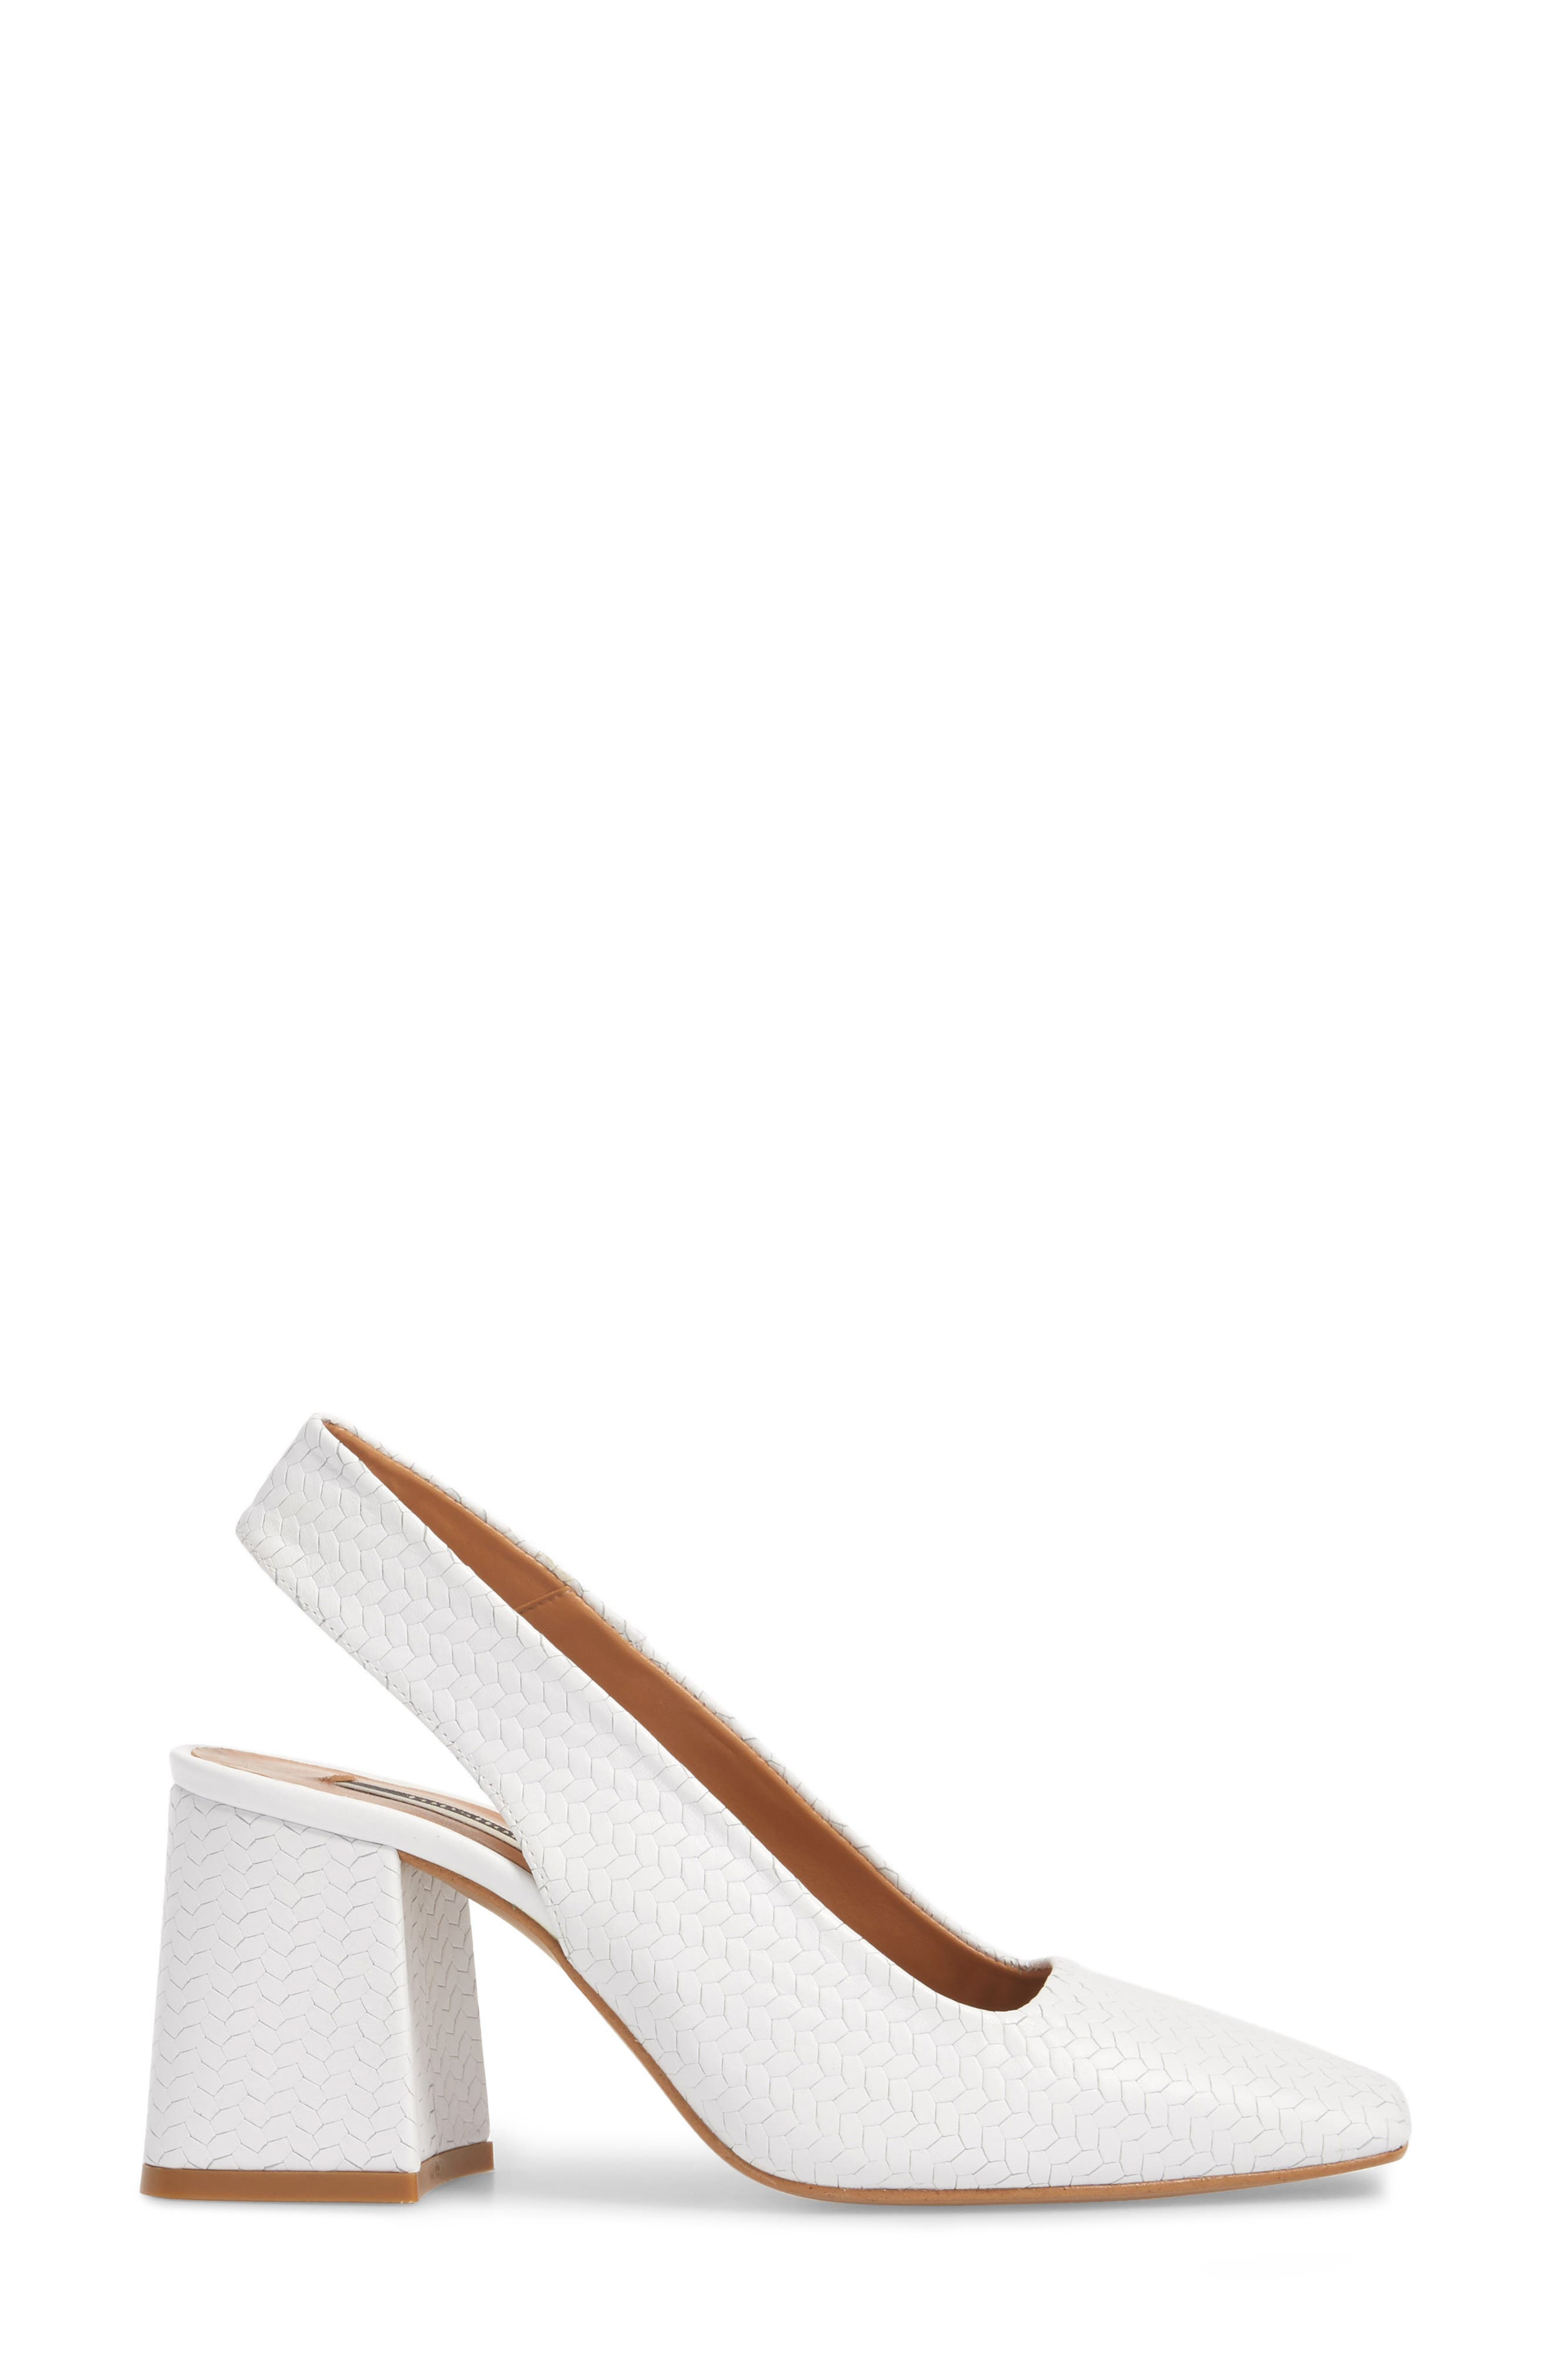 Gainor Block Heel Slingback Pump,                             Alternate thumbnail 3, color,                             White